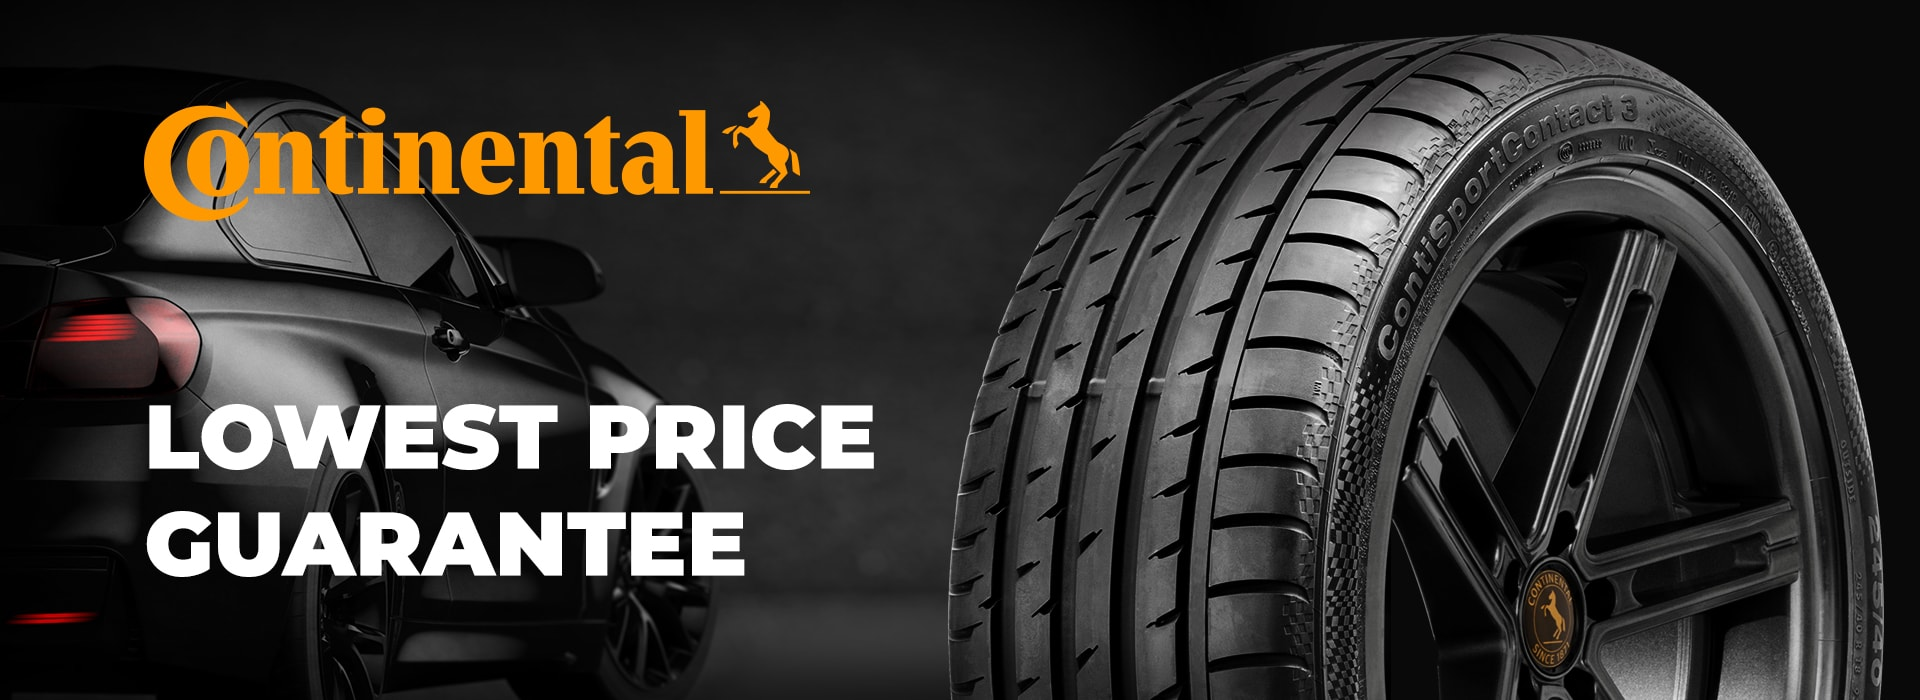 Continental Lowest Price Guarantee